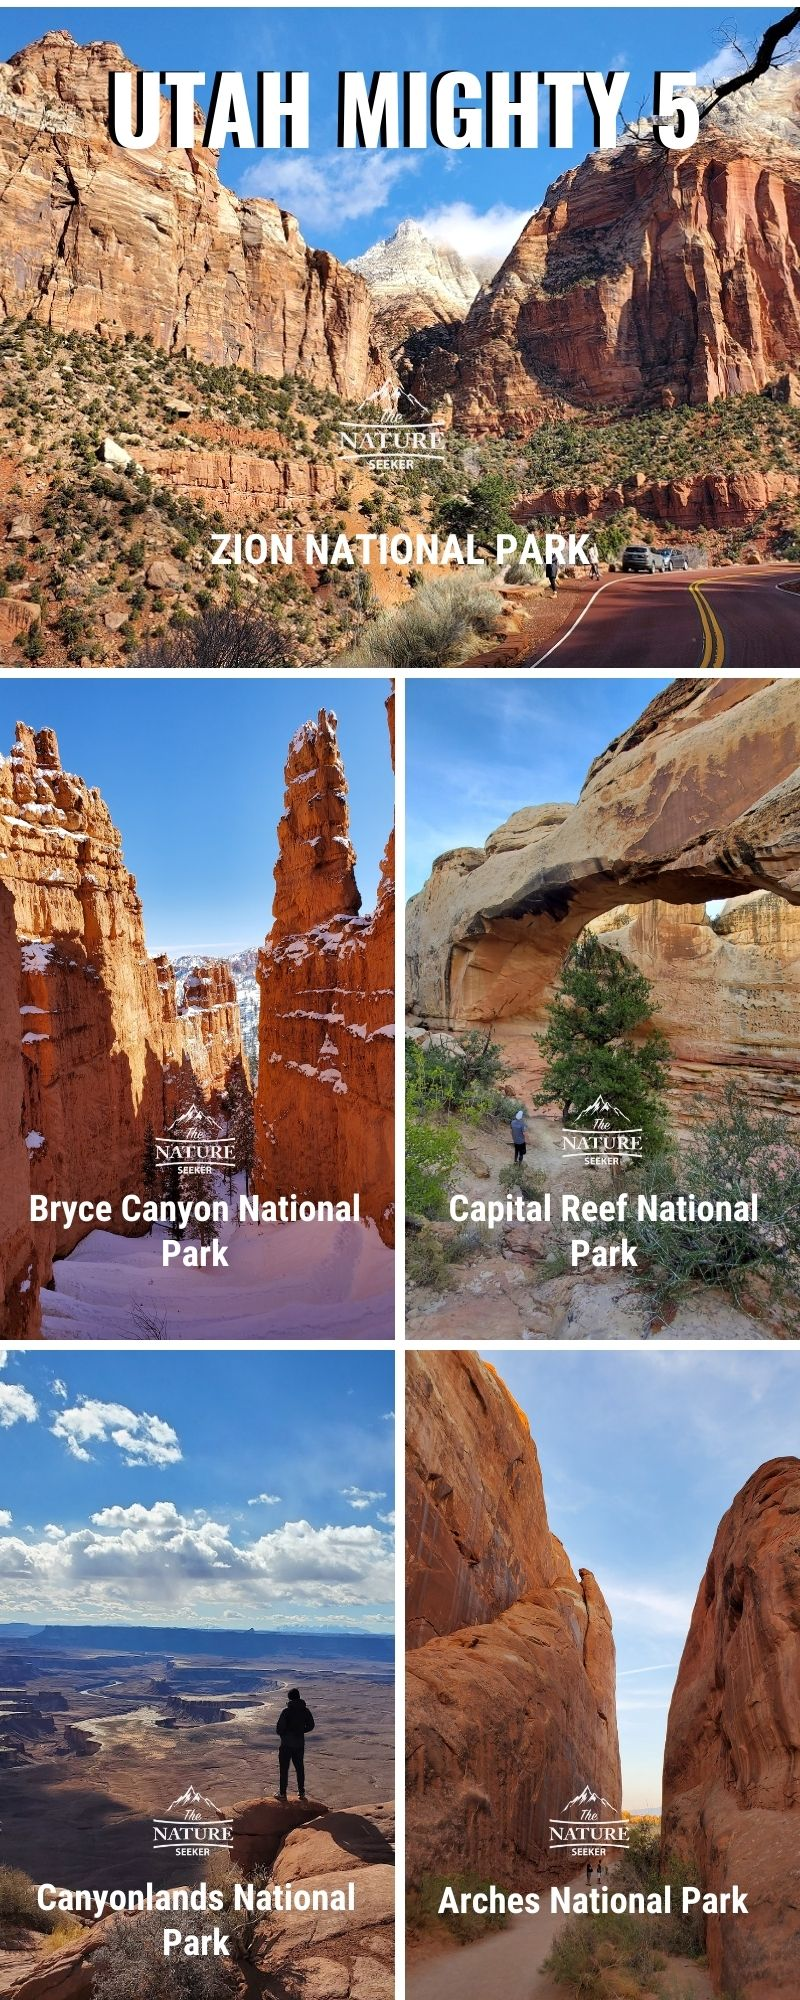 Utah mighty 5 national parks infographic